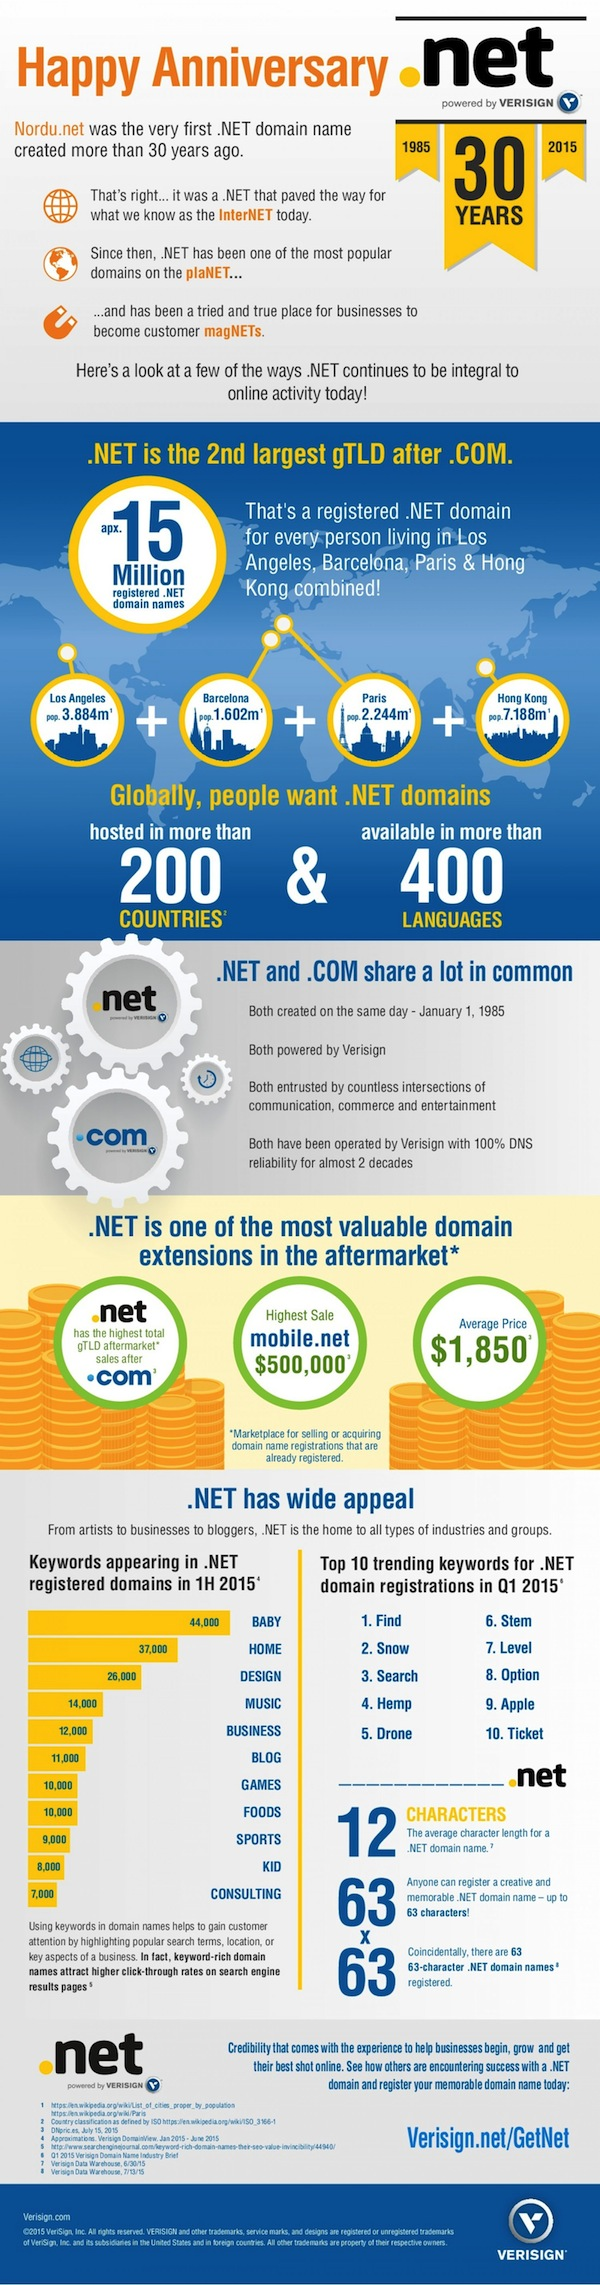 NET 30th Anniversary Infographic